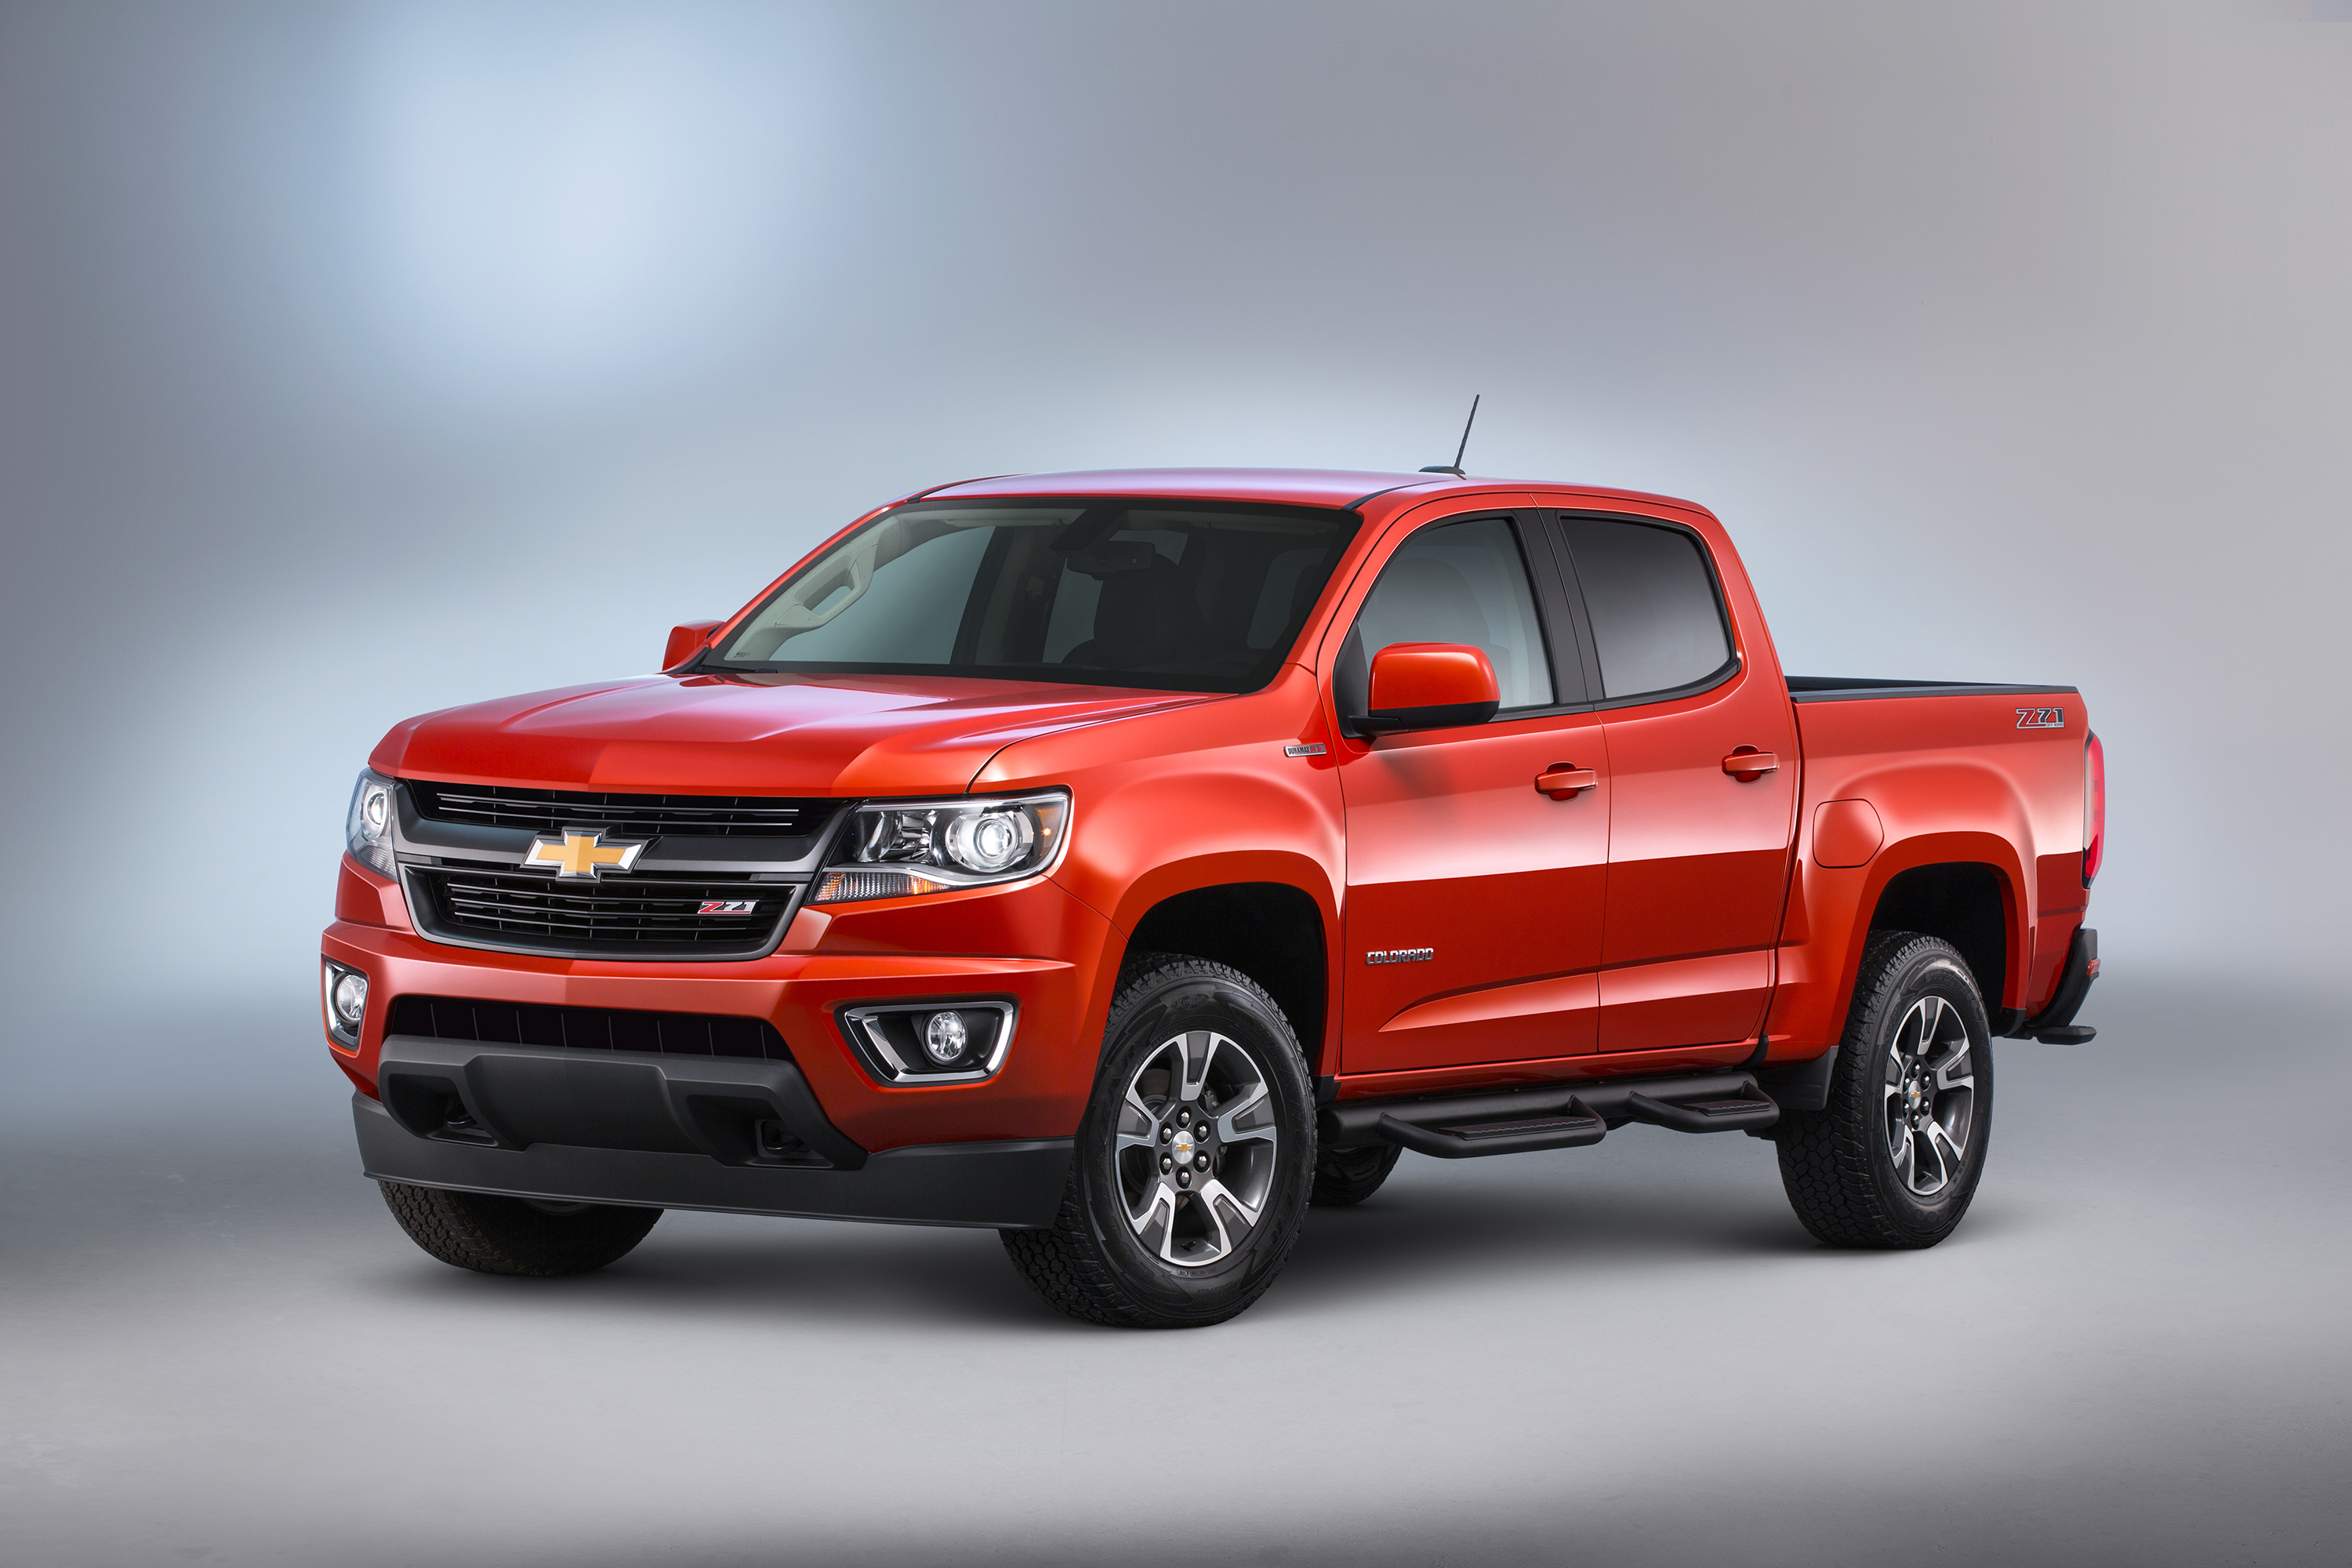 2016 Chevrolet Colorado Duramax TurboDiesel 048 chevrolet introduces colorado duramax diesel 2015 Chevy Colorado Speedometer at aneh.co